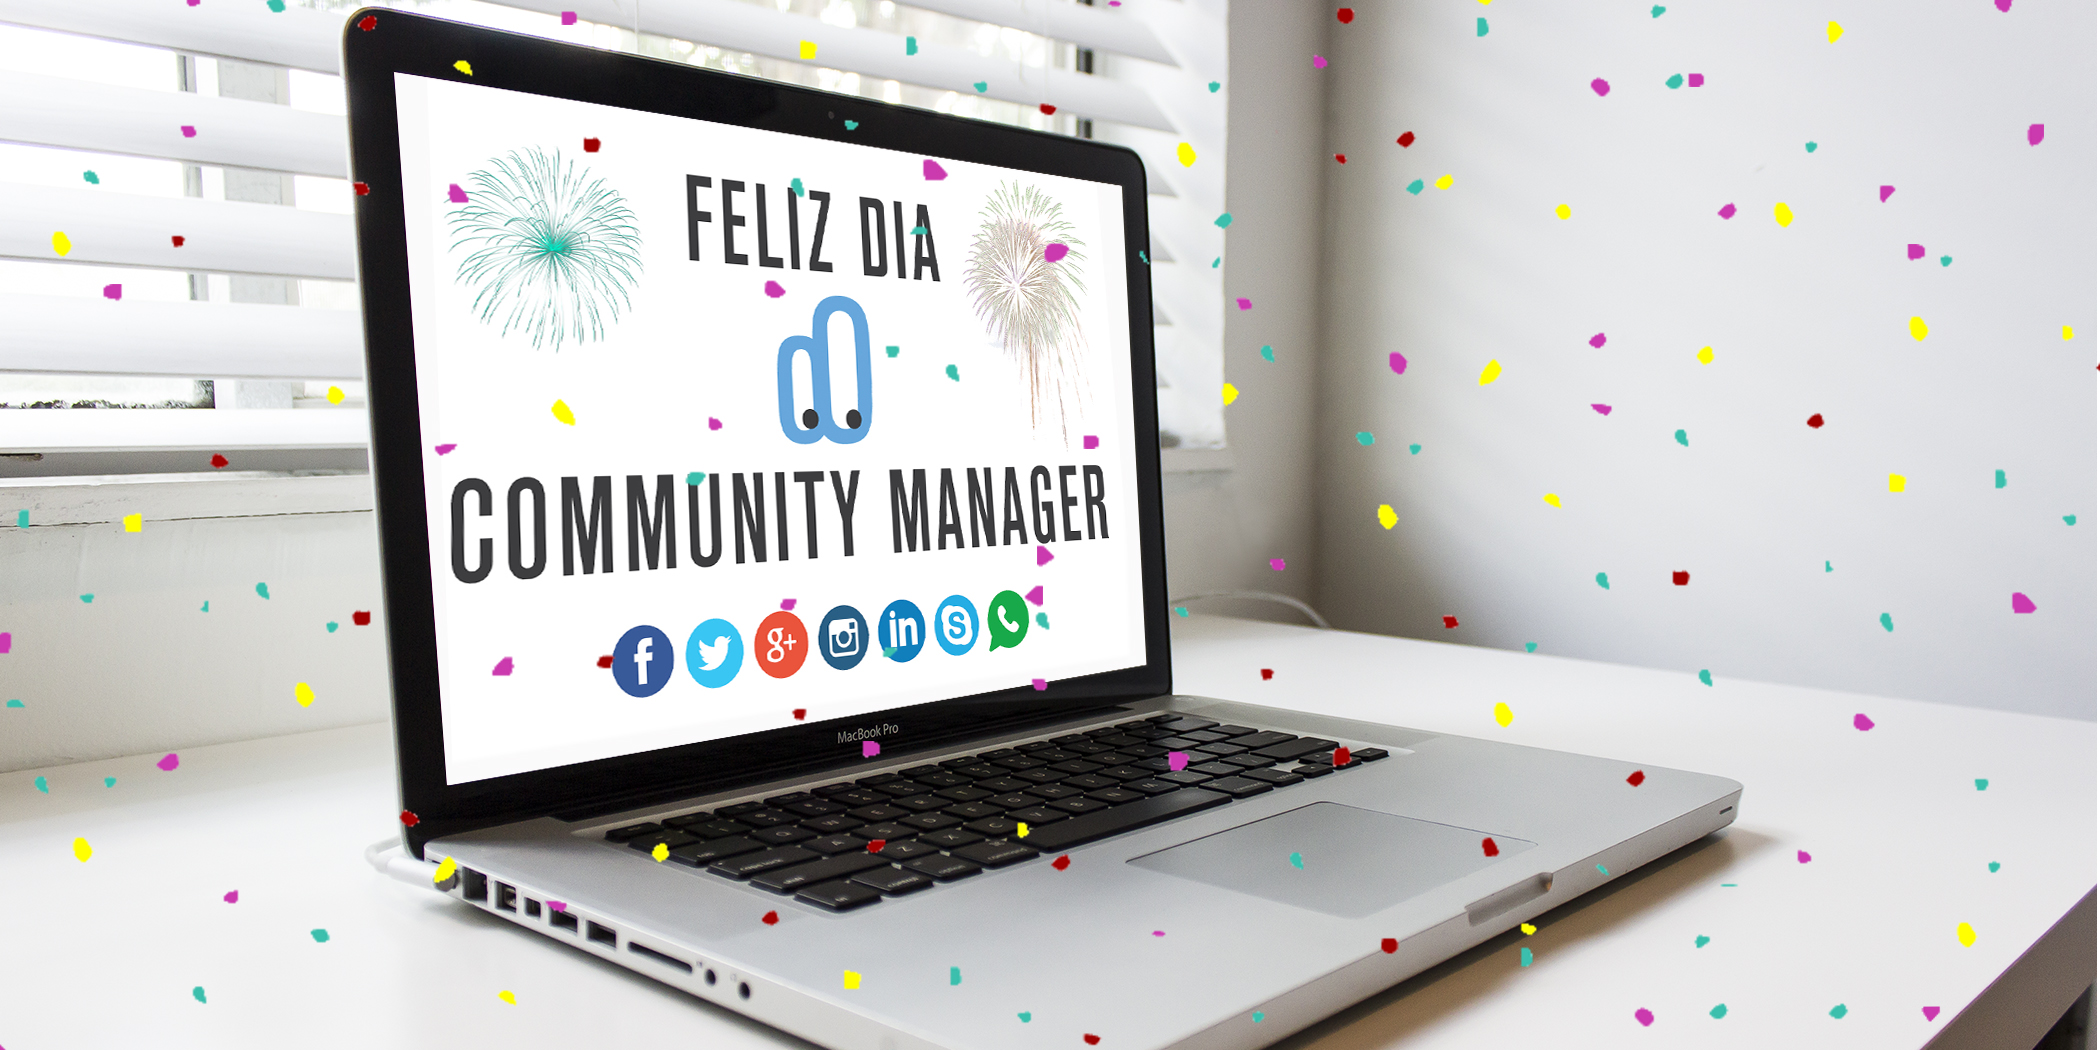 feliz dia community manager